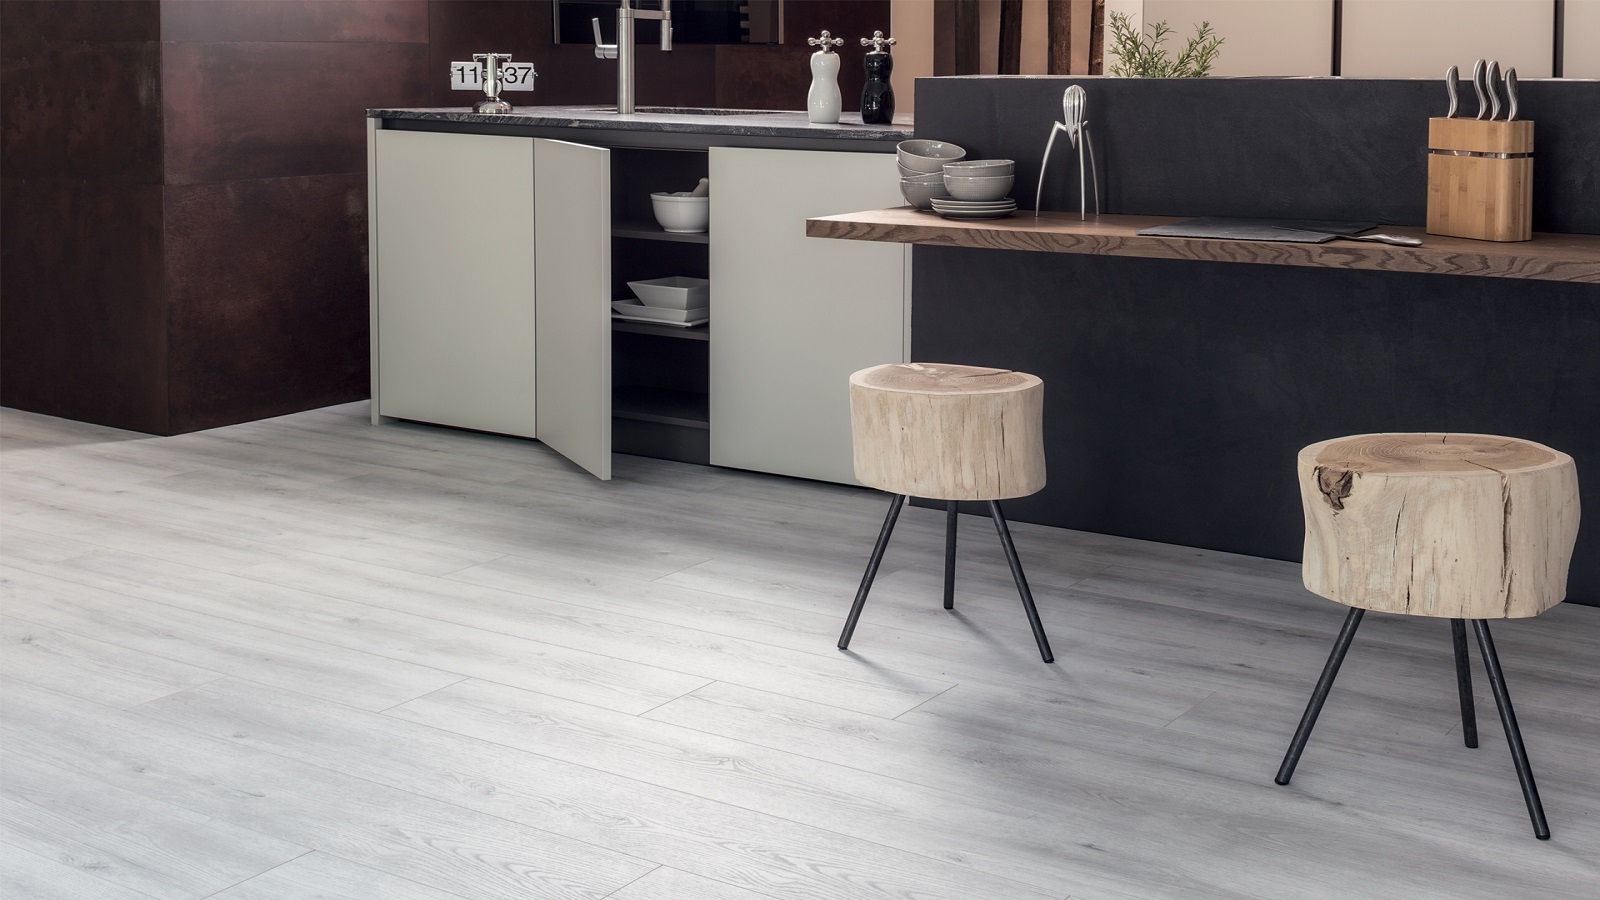 Ламинат Kaindk Natural Touch Standart 33 класс